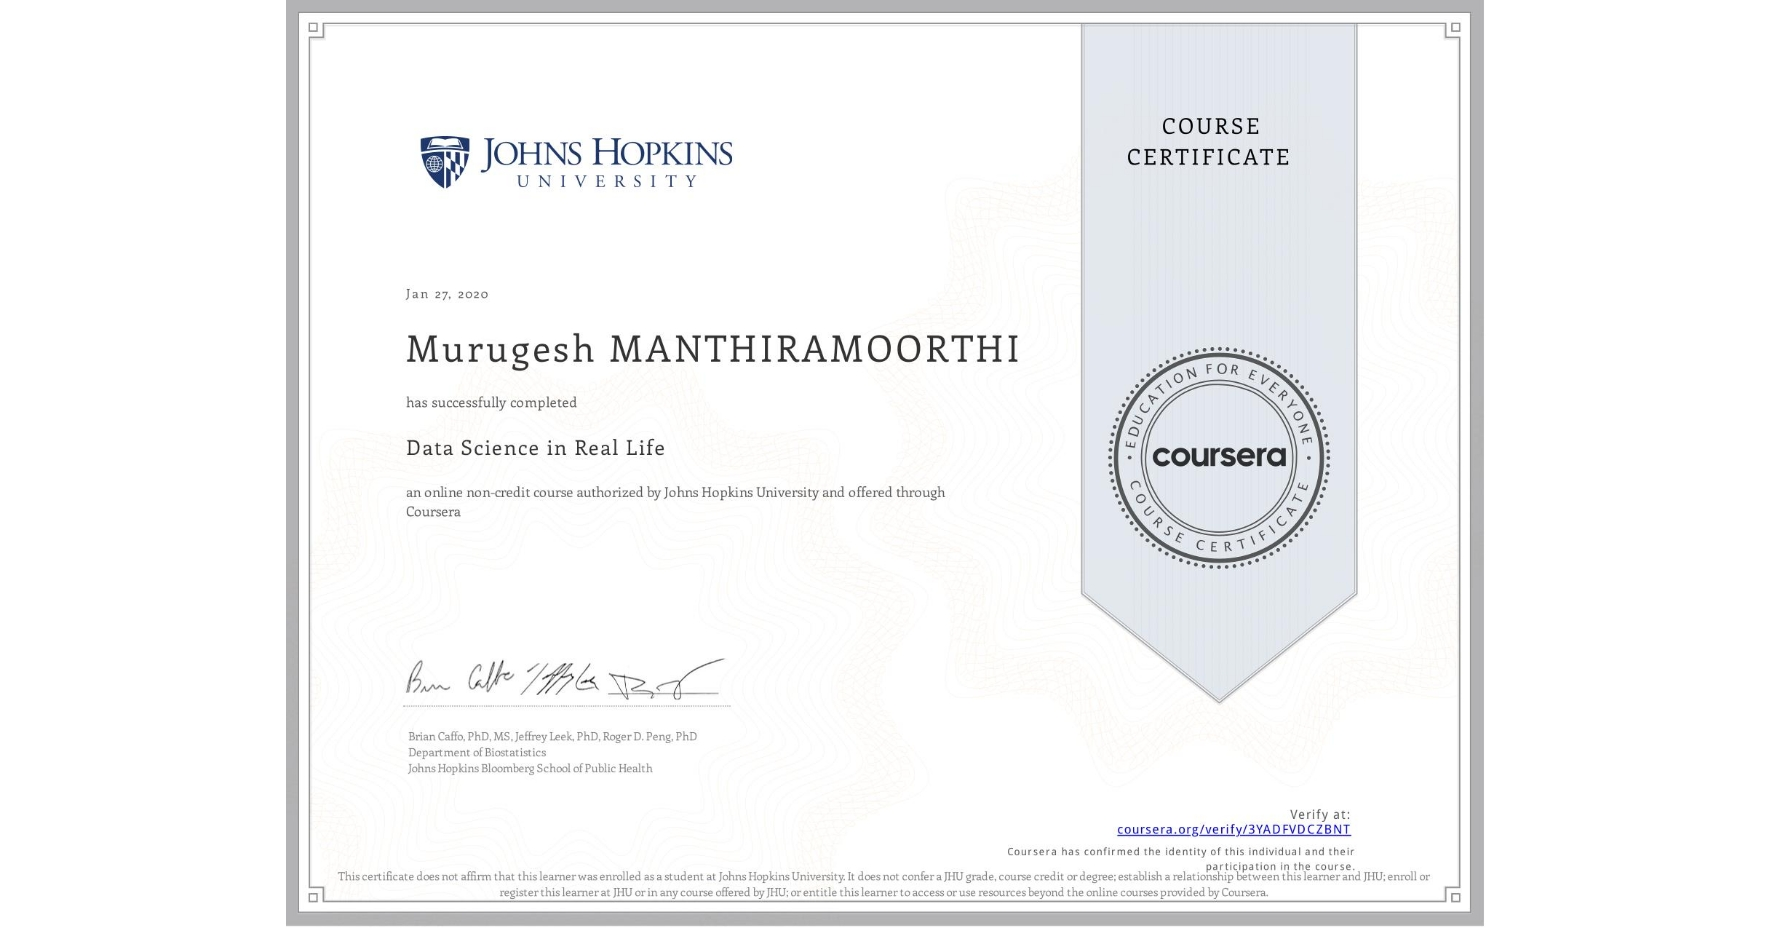 View certificate for Murugesh Manthiramoorthi, Data Science in Real Life, an online non-credit course authorized by Johns Hopkins University and offered through Coursera